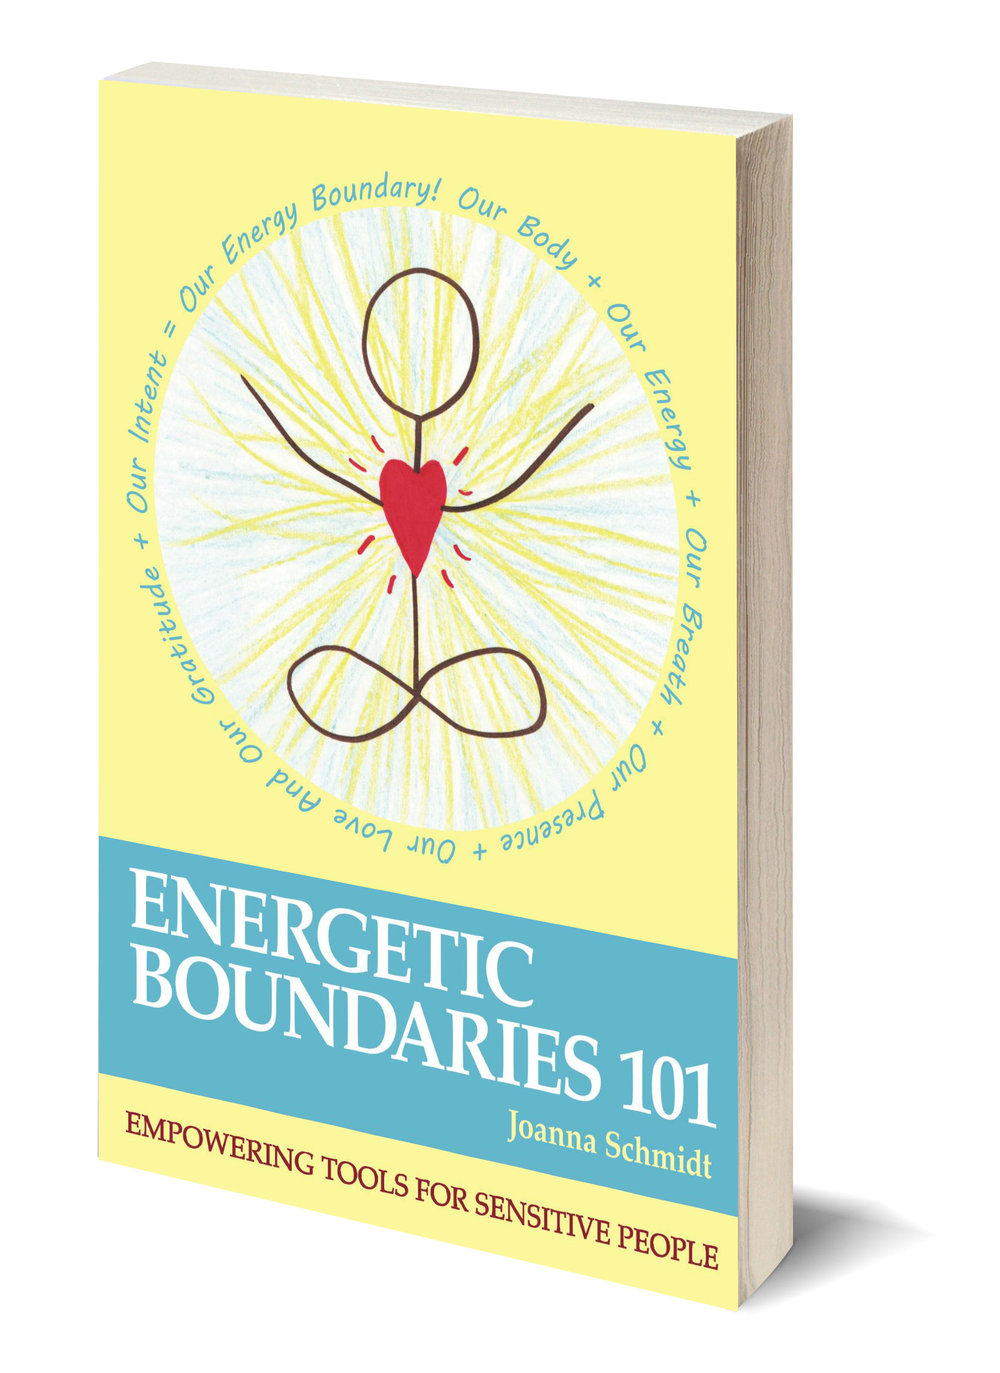 Energetic Boundaries 101, by Joanna Schmidt